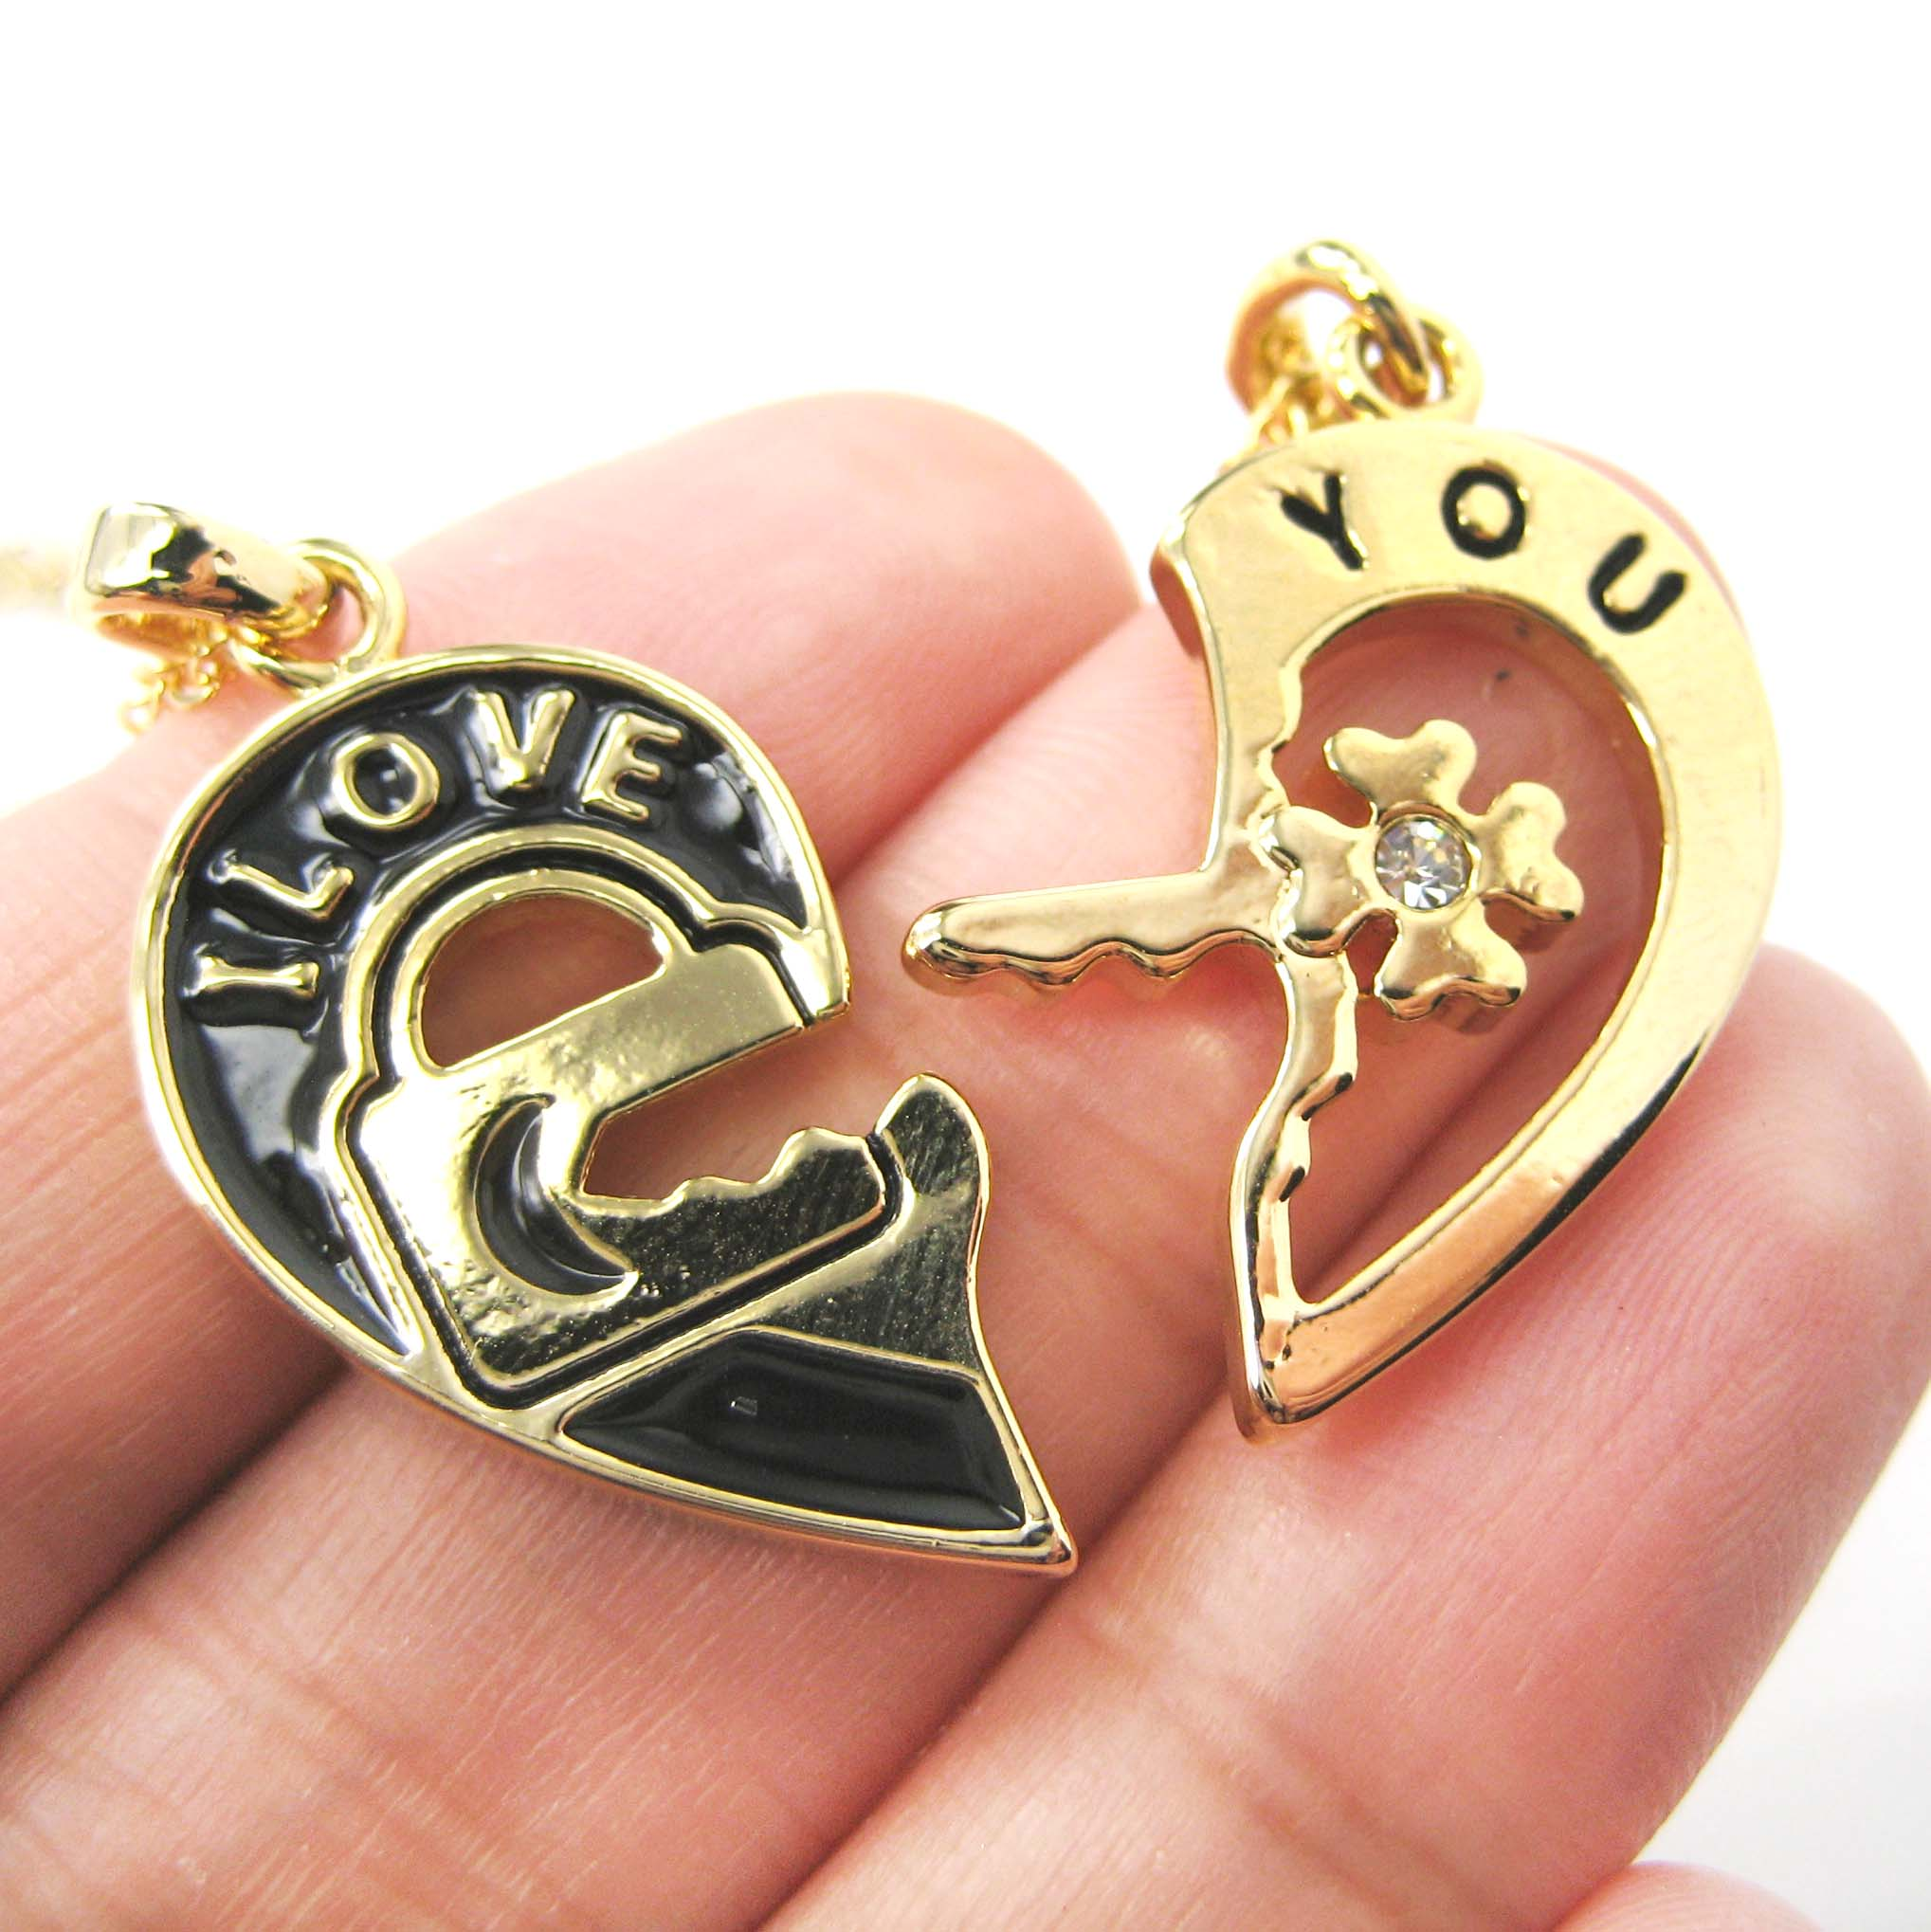 Couples 2 piece heart shaped i love you lock and key pendant 2 piece heart shaped lock and key i love you couple necklace in gold original aloadofball Choice Image